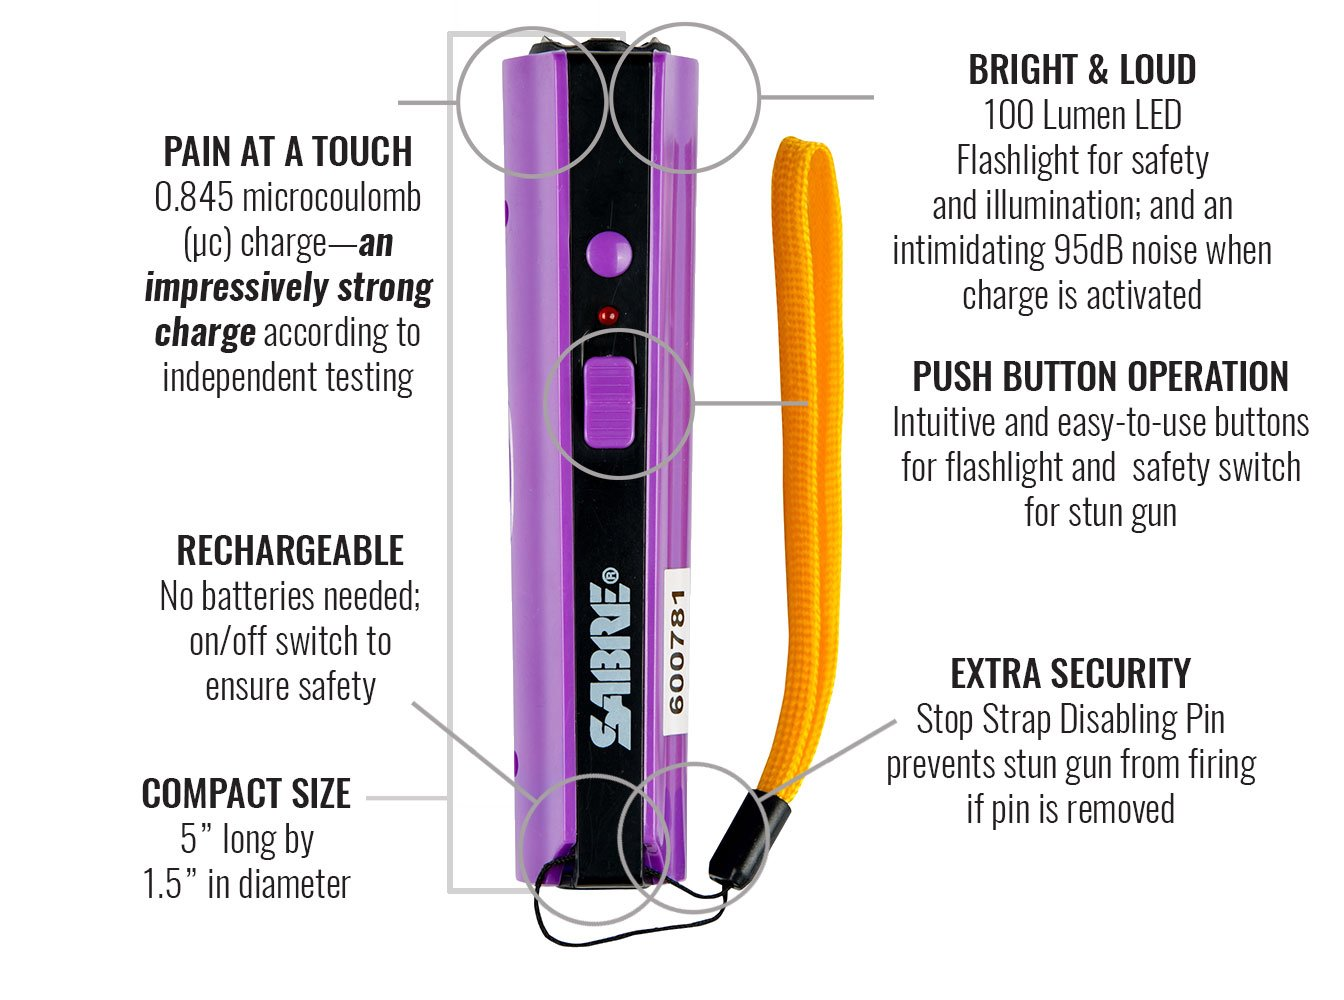 Sabre S 1006 Pr Concealable Stun Gun Led Flashlight Simple Electrical Diagram Electric Shock Delivers 0845 Pain Inducing Microcoulombs 100 Lumens Disabling Safety Pin Training